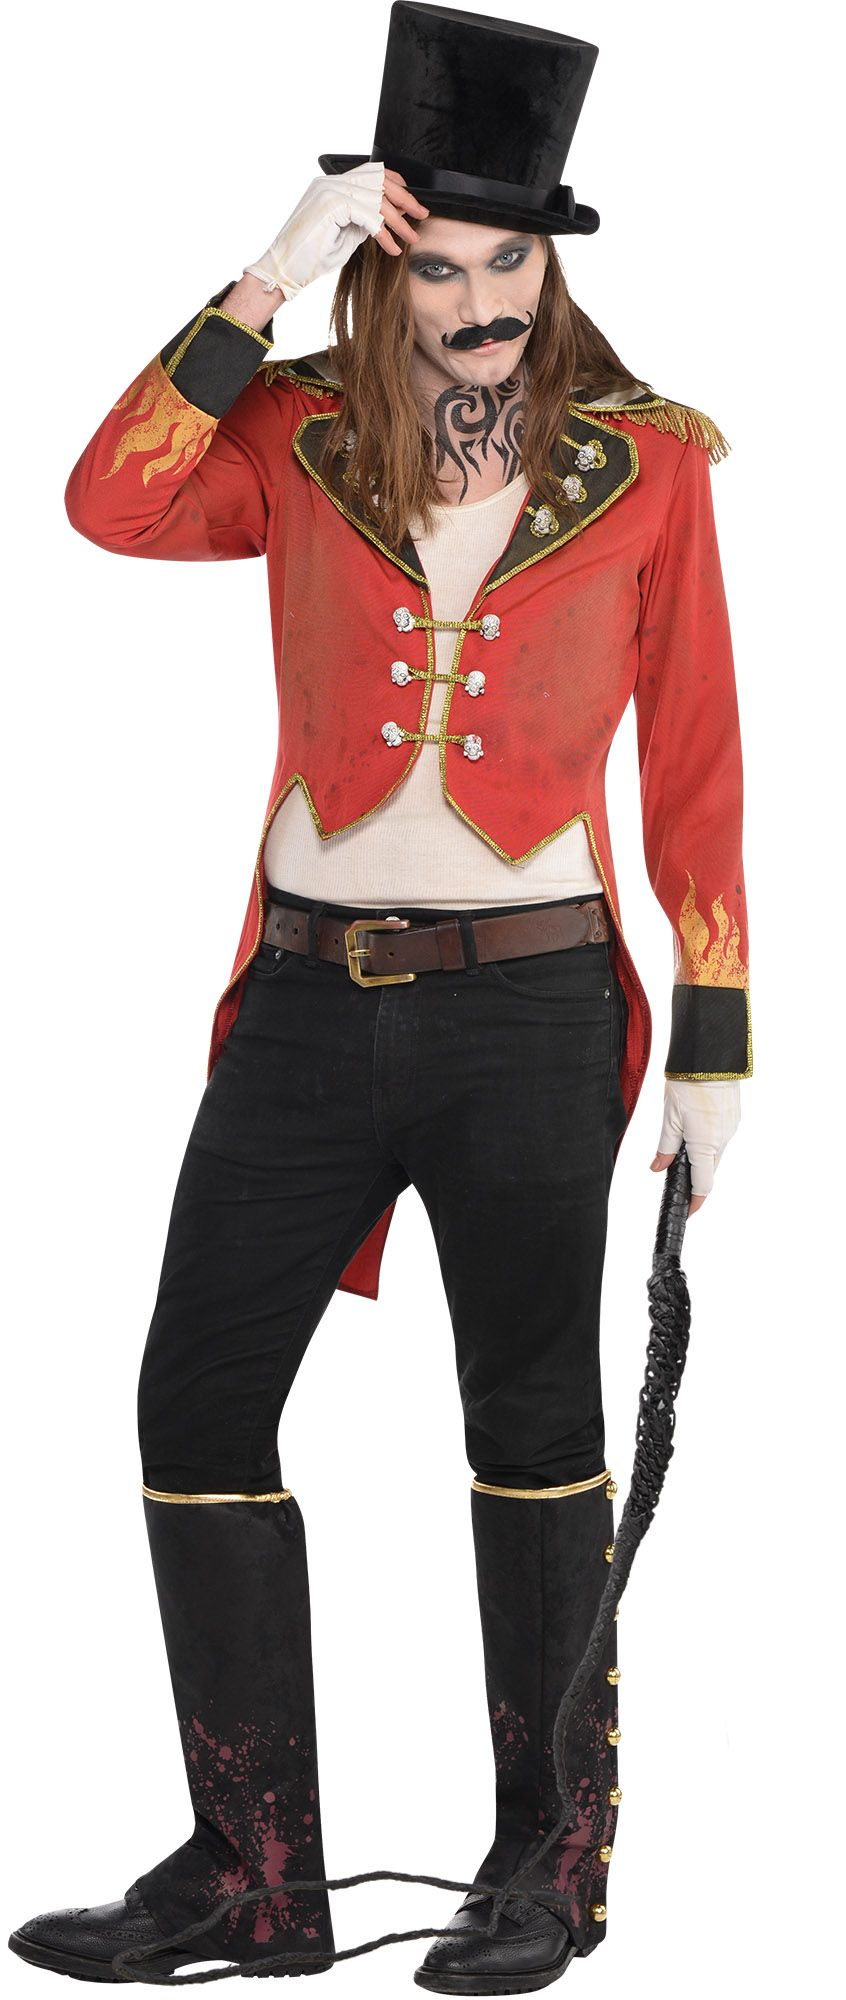 Create Your Look - Male Freak Show Ringmaster